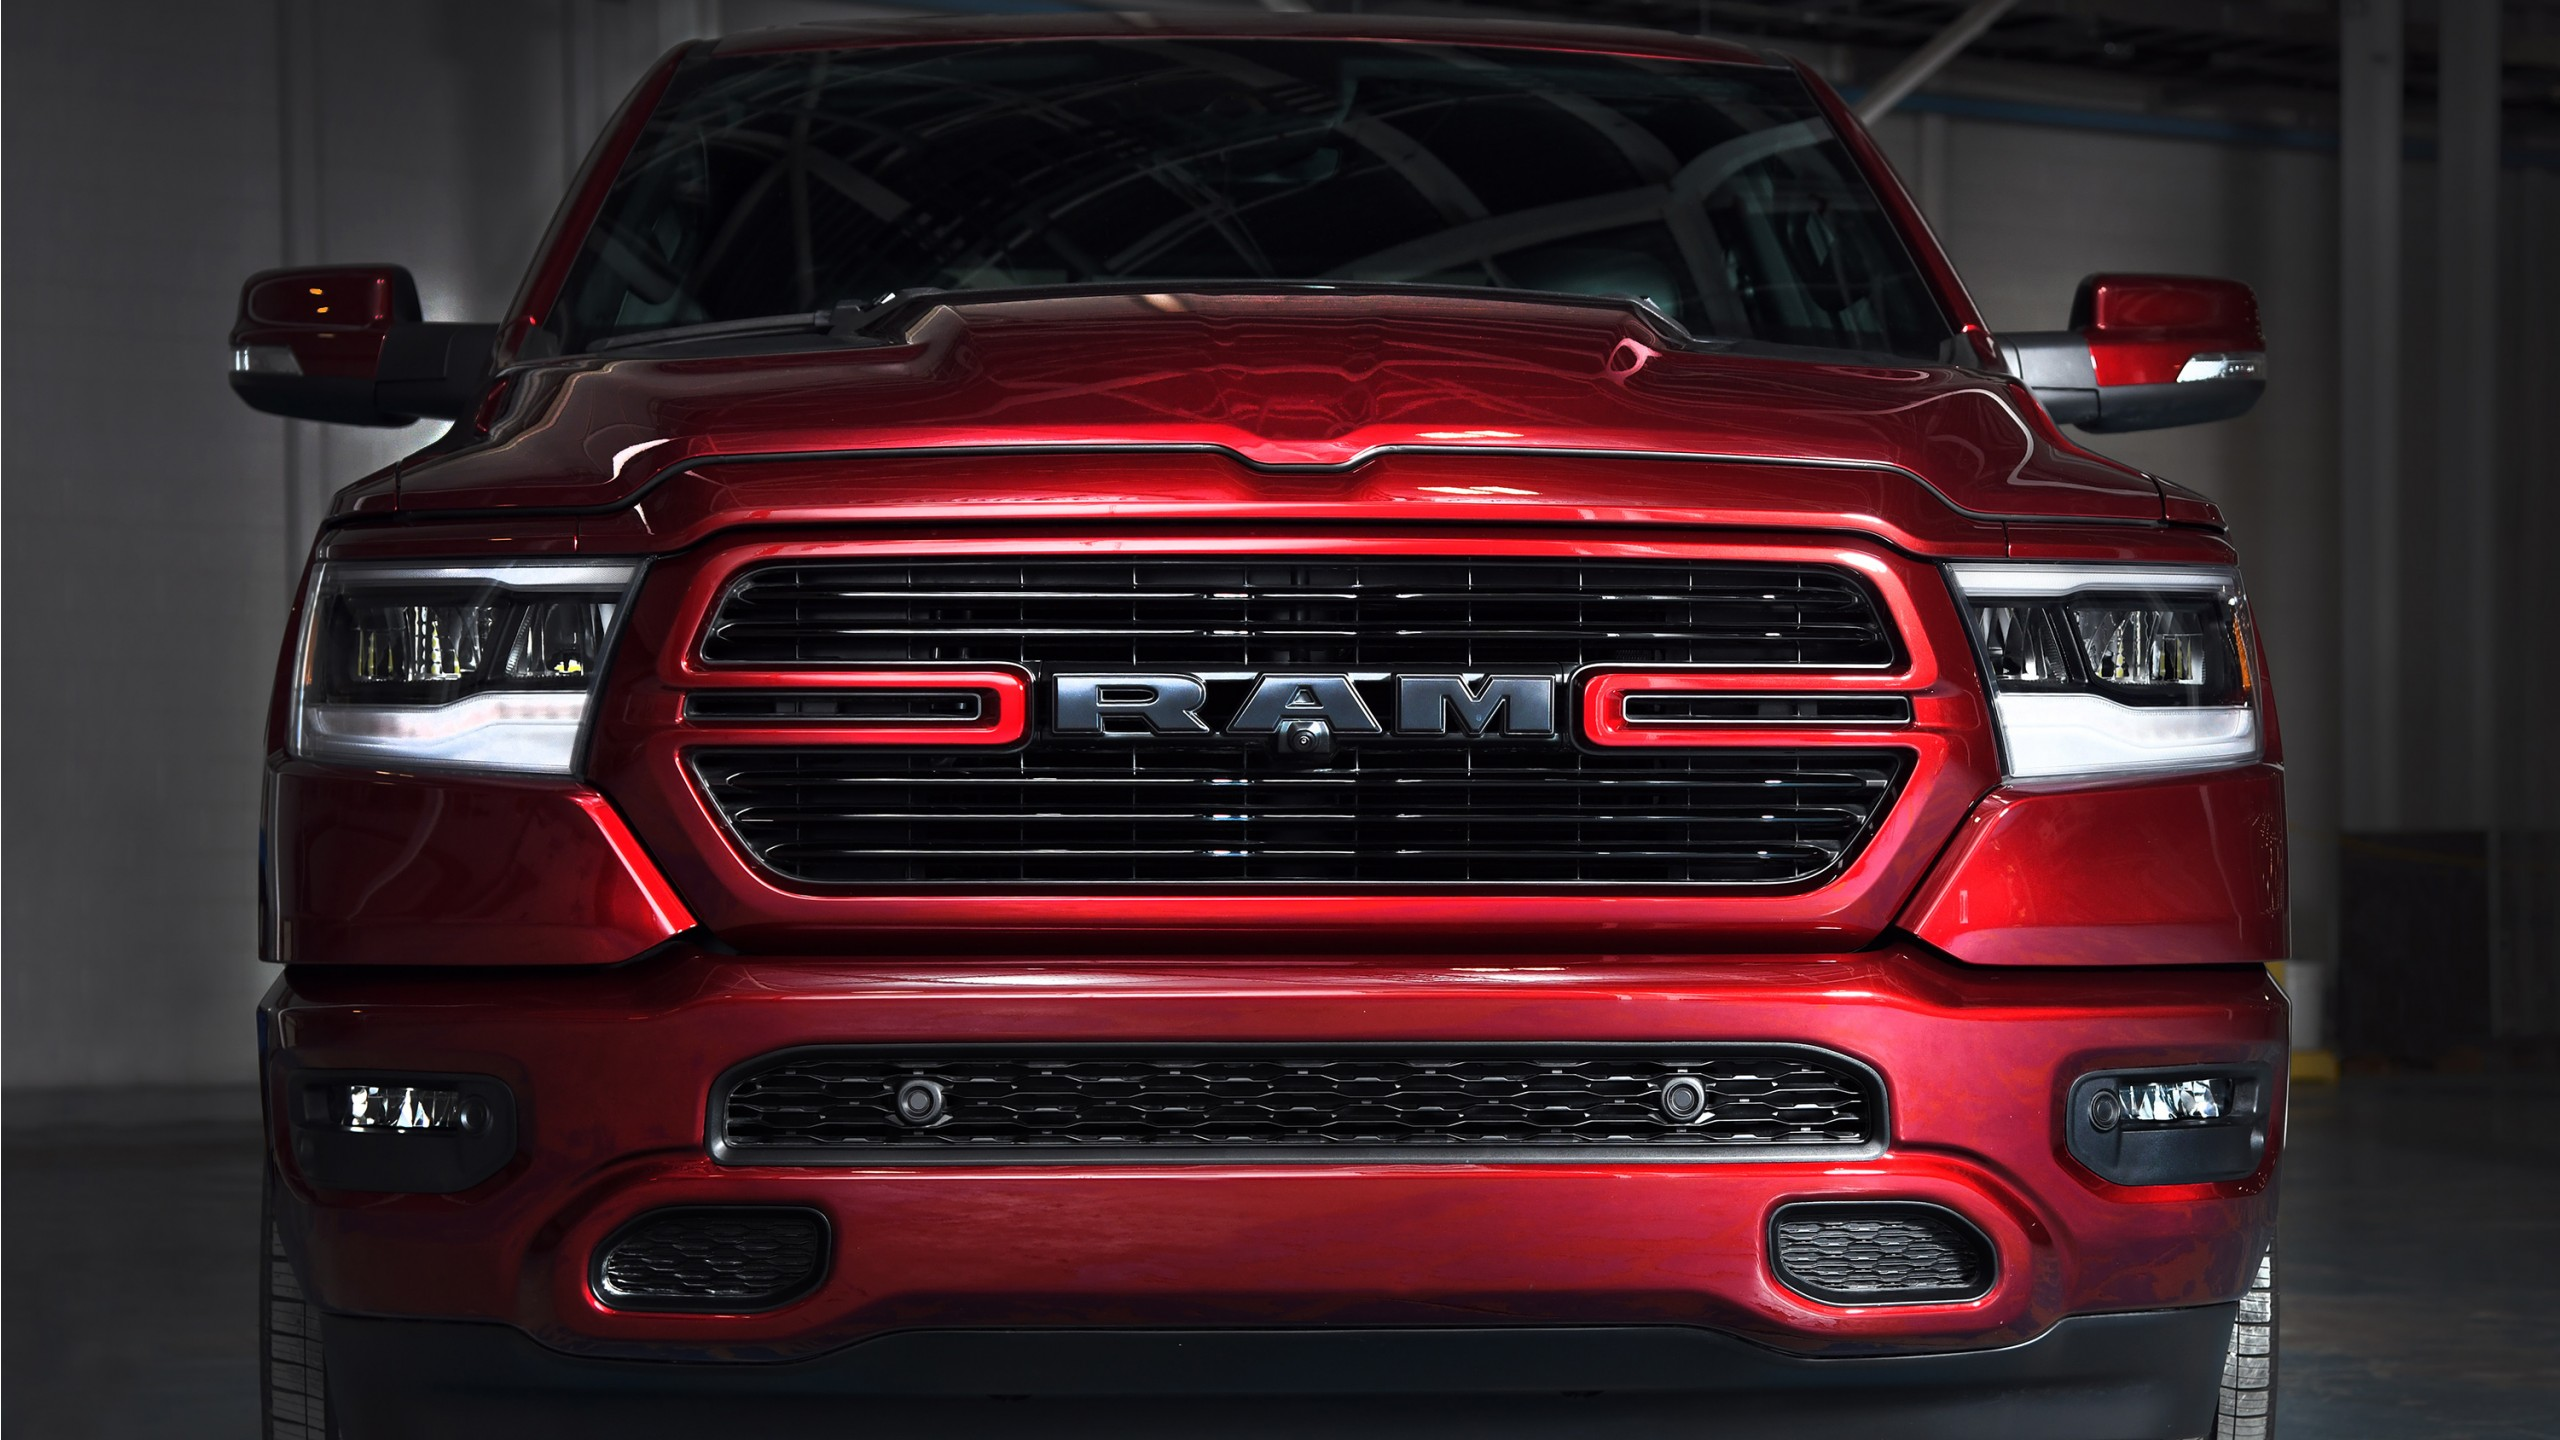 2019 Ram 1500 Sport Crew Cab Wallpaper Hd Car Wallpapers